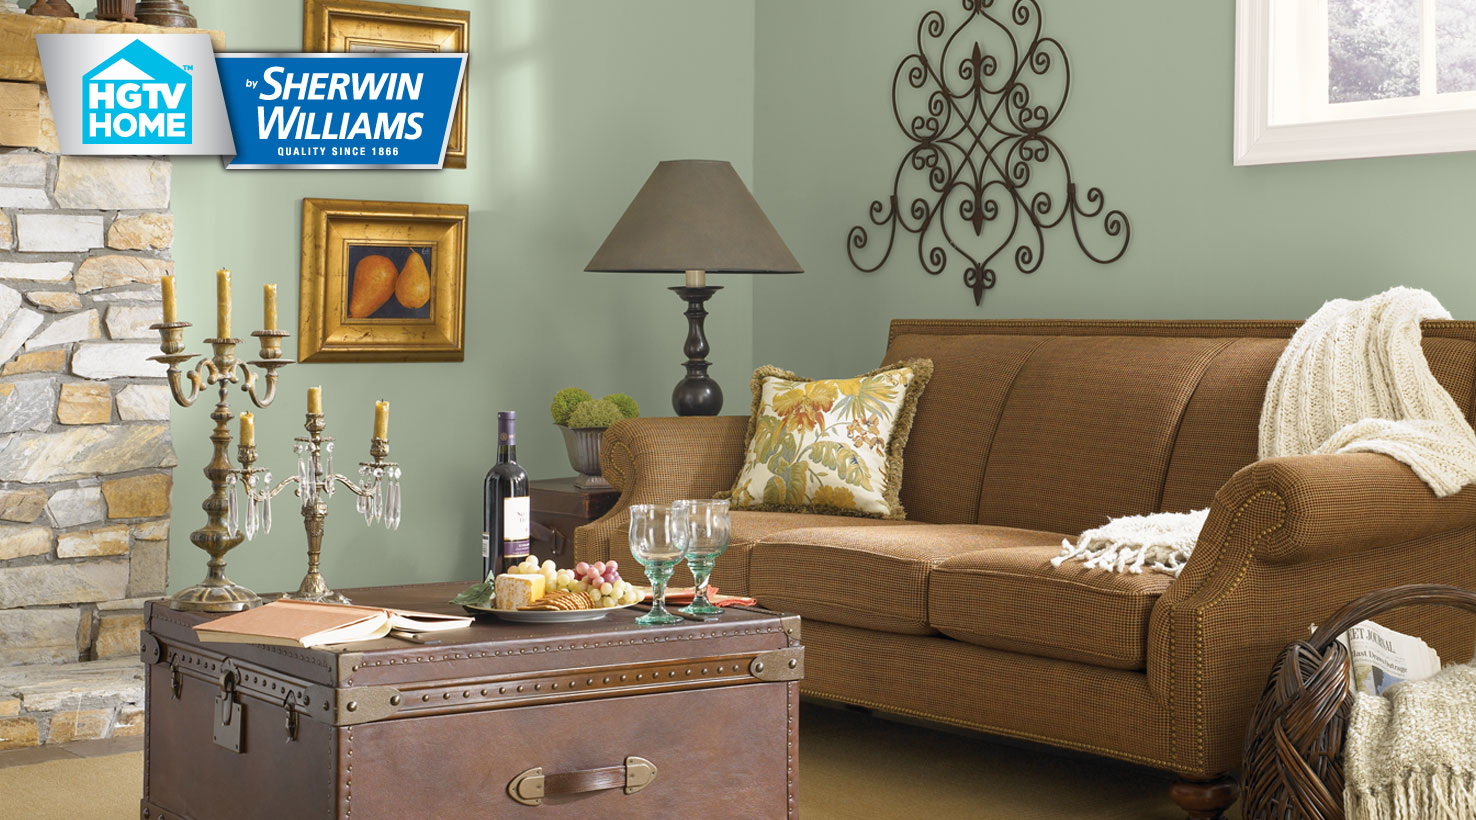 rustic paint colors for living rooms room wall decor ideas 2018 refined color collection hgtv home by sherwin williams